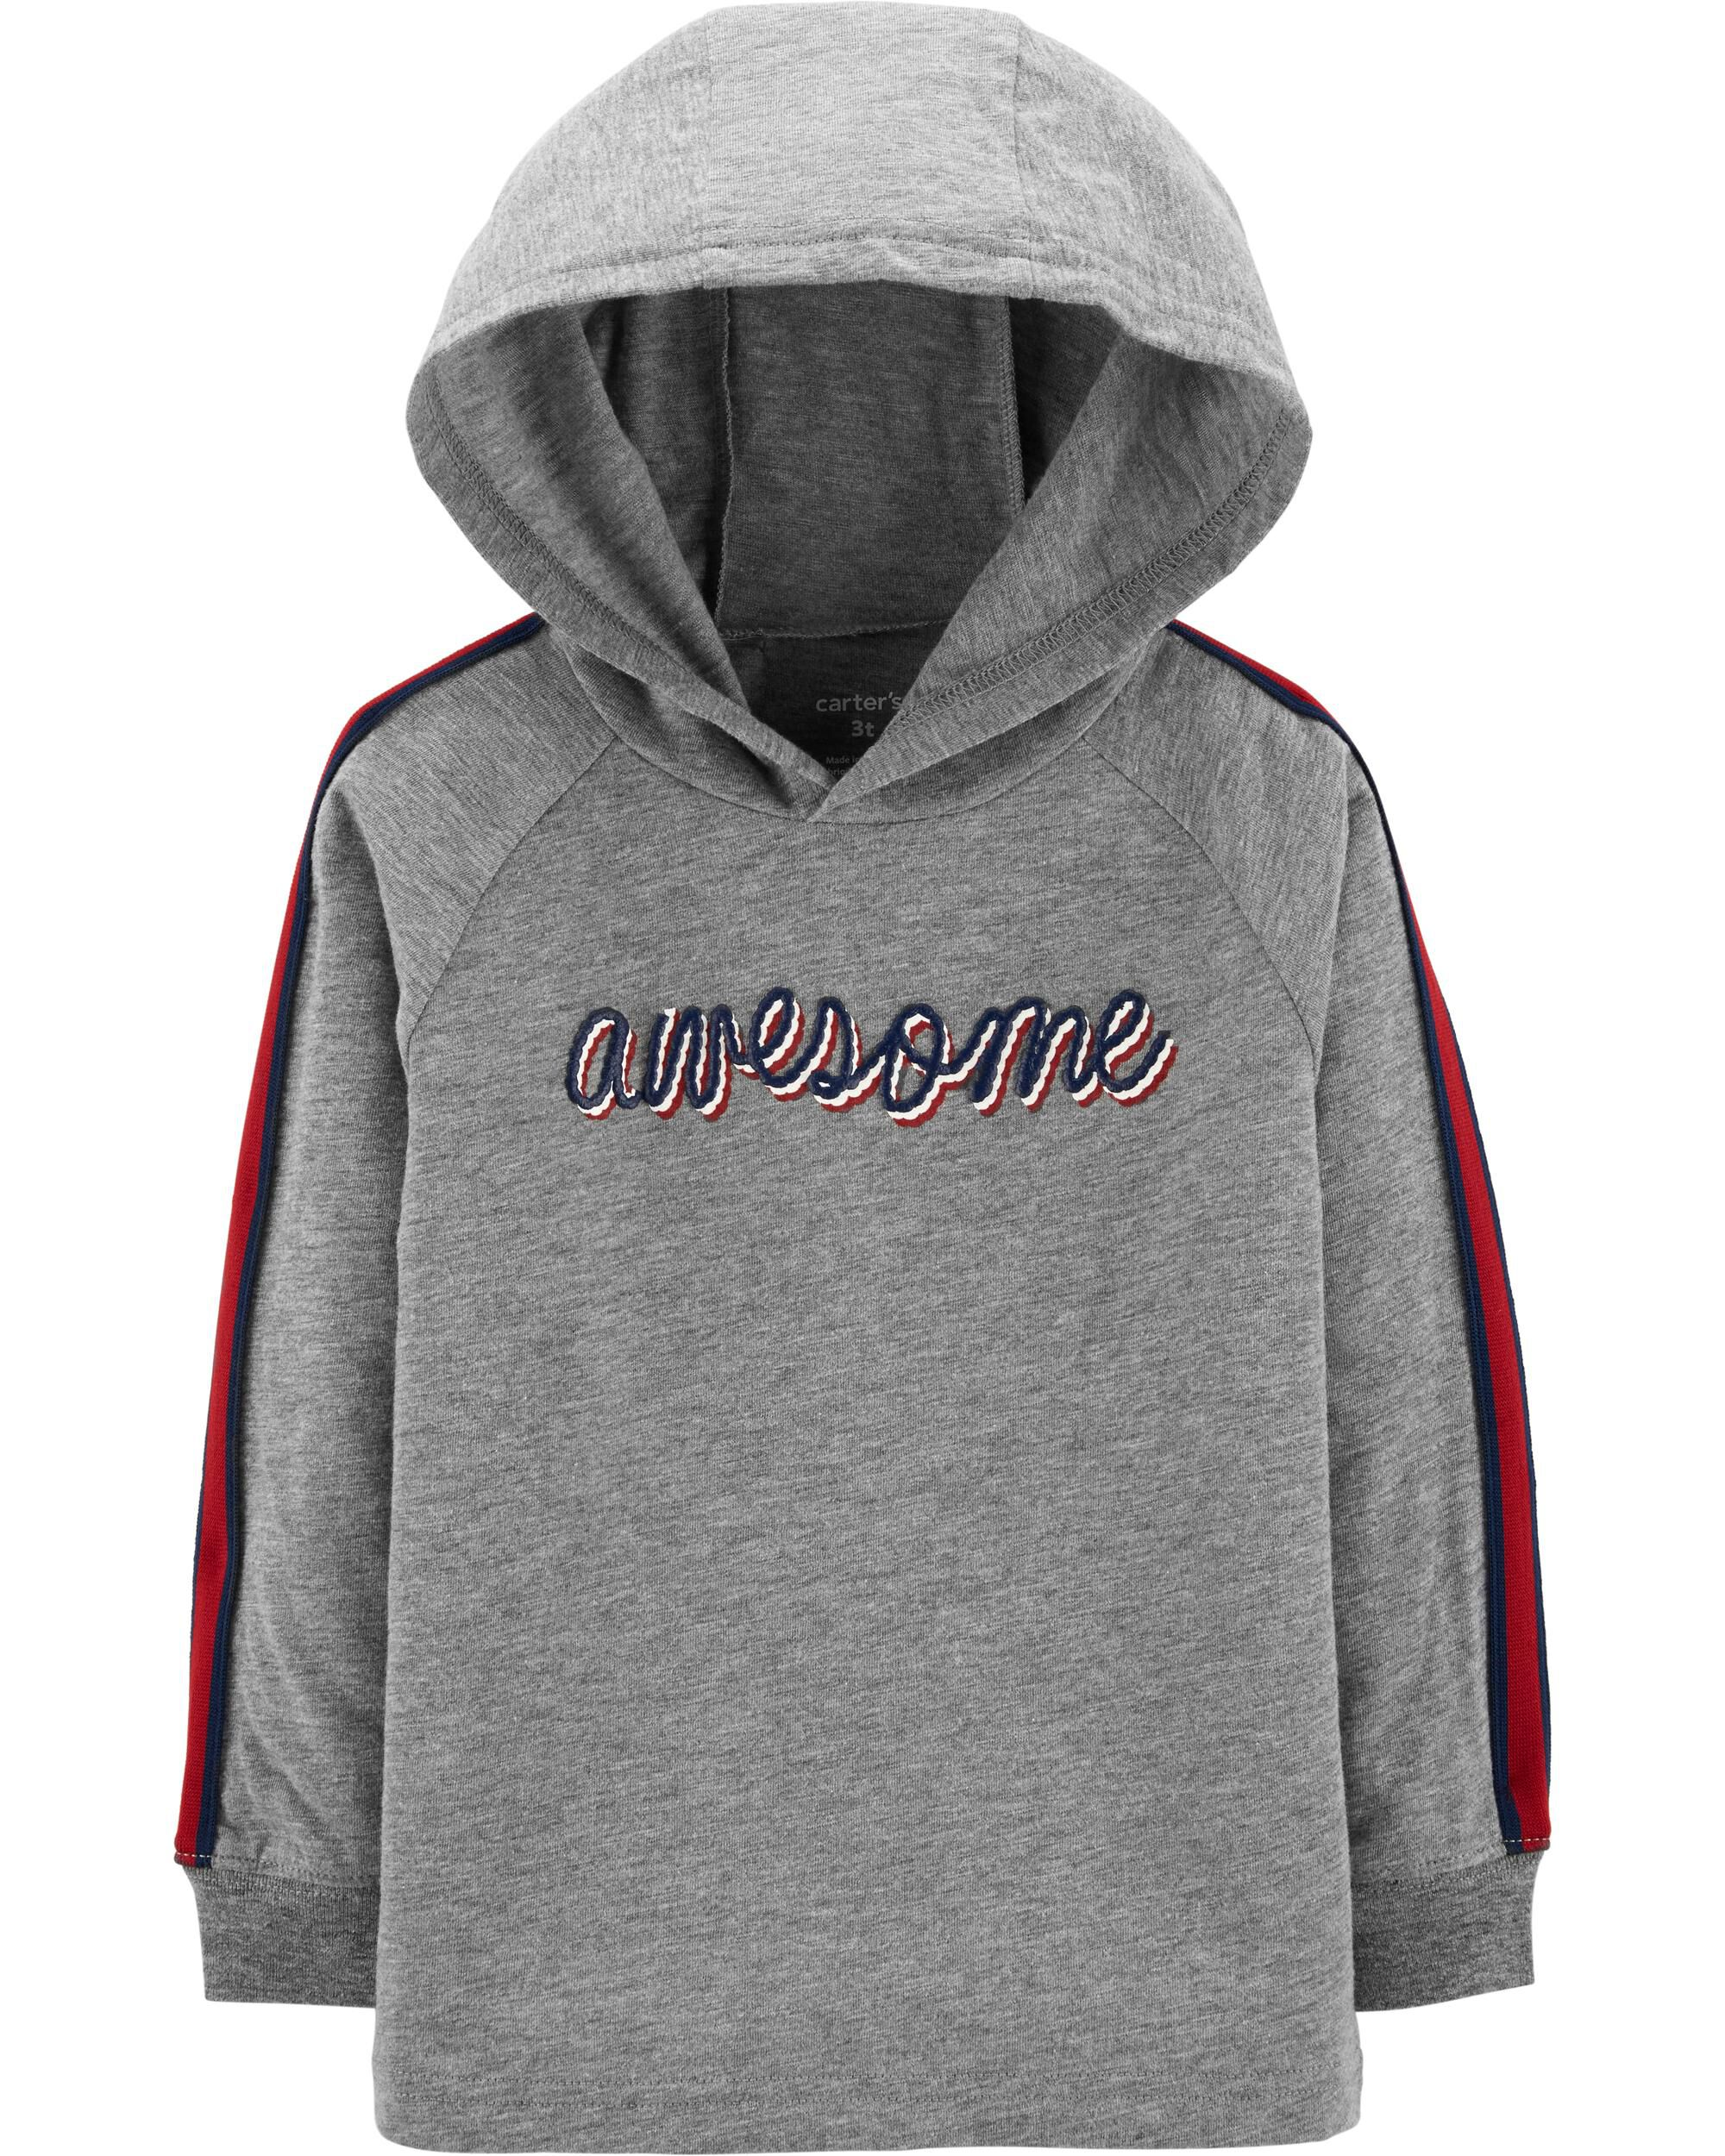 *CLEARANCE* Awesome Hooded Slub Jersey Tee